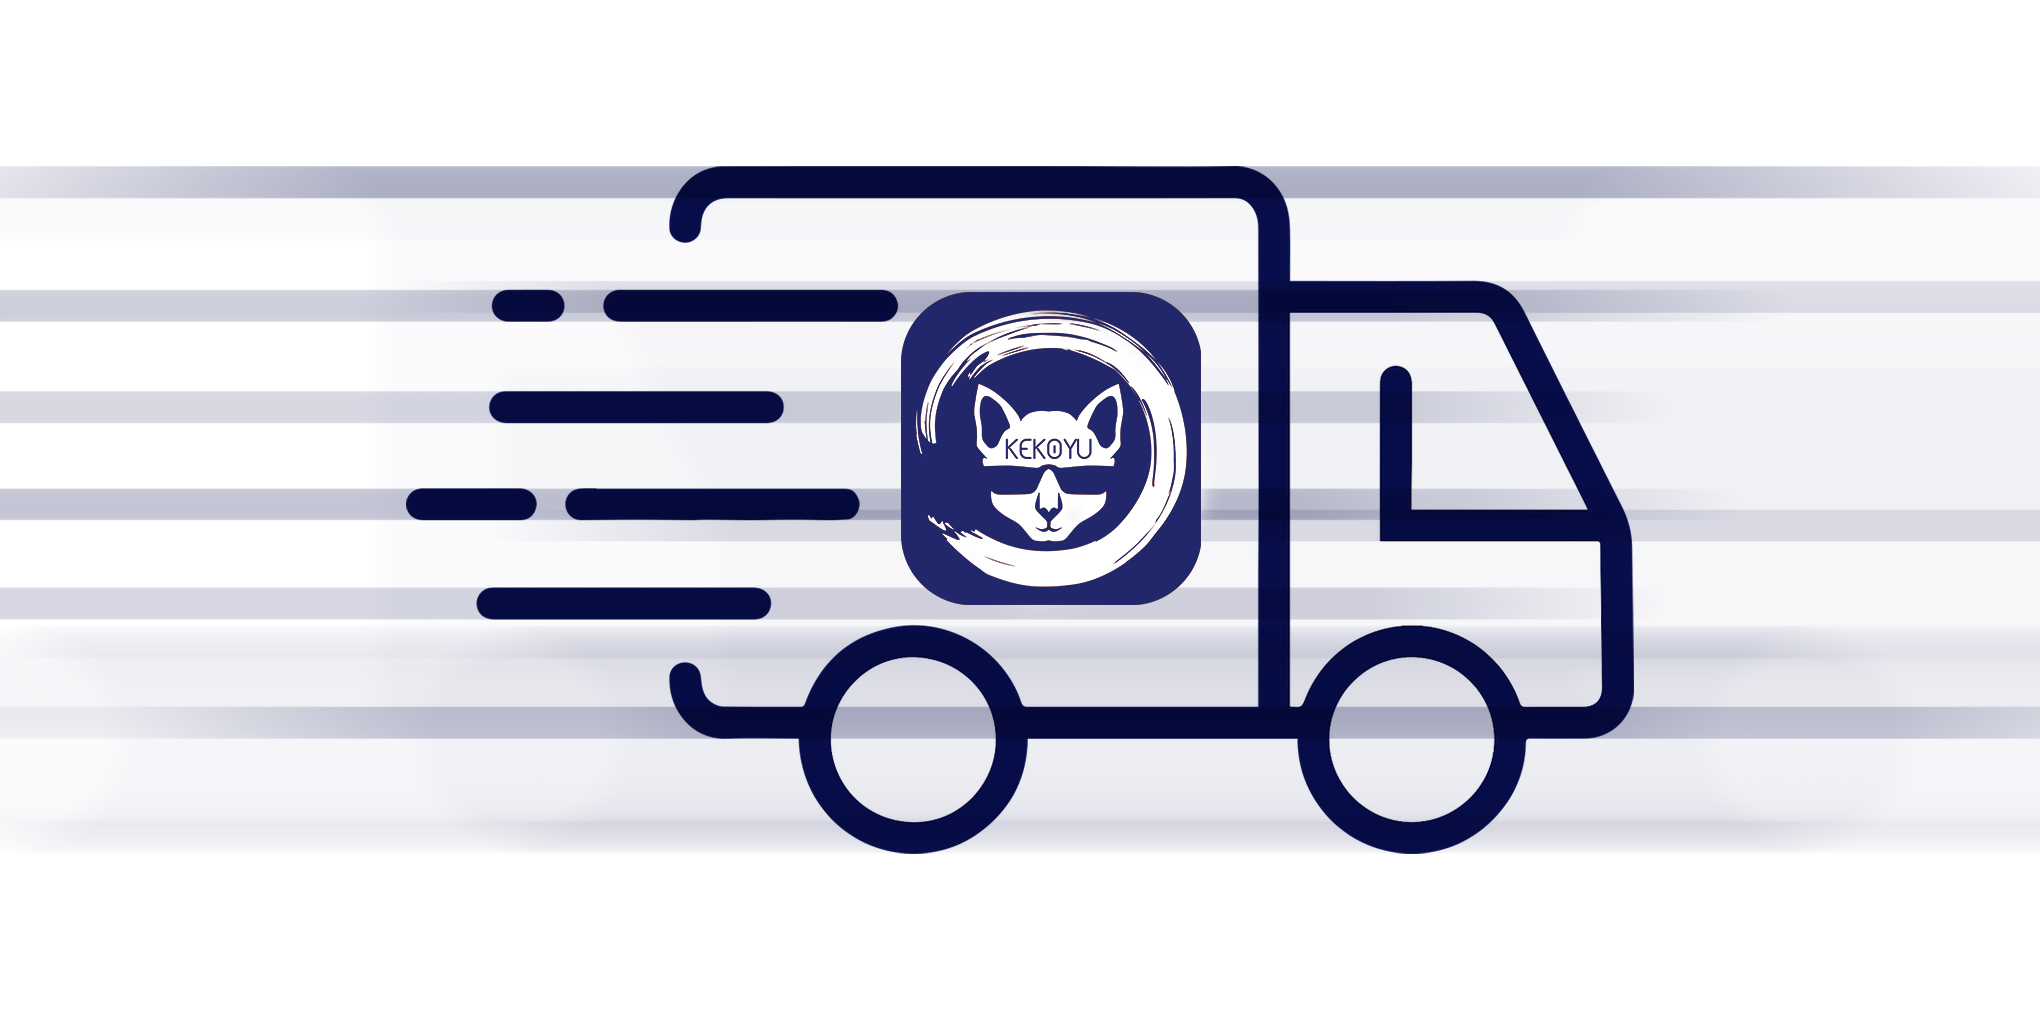 bags-when-will-the-goods-be-delivered